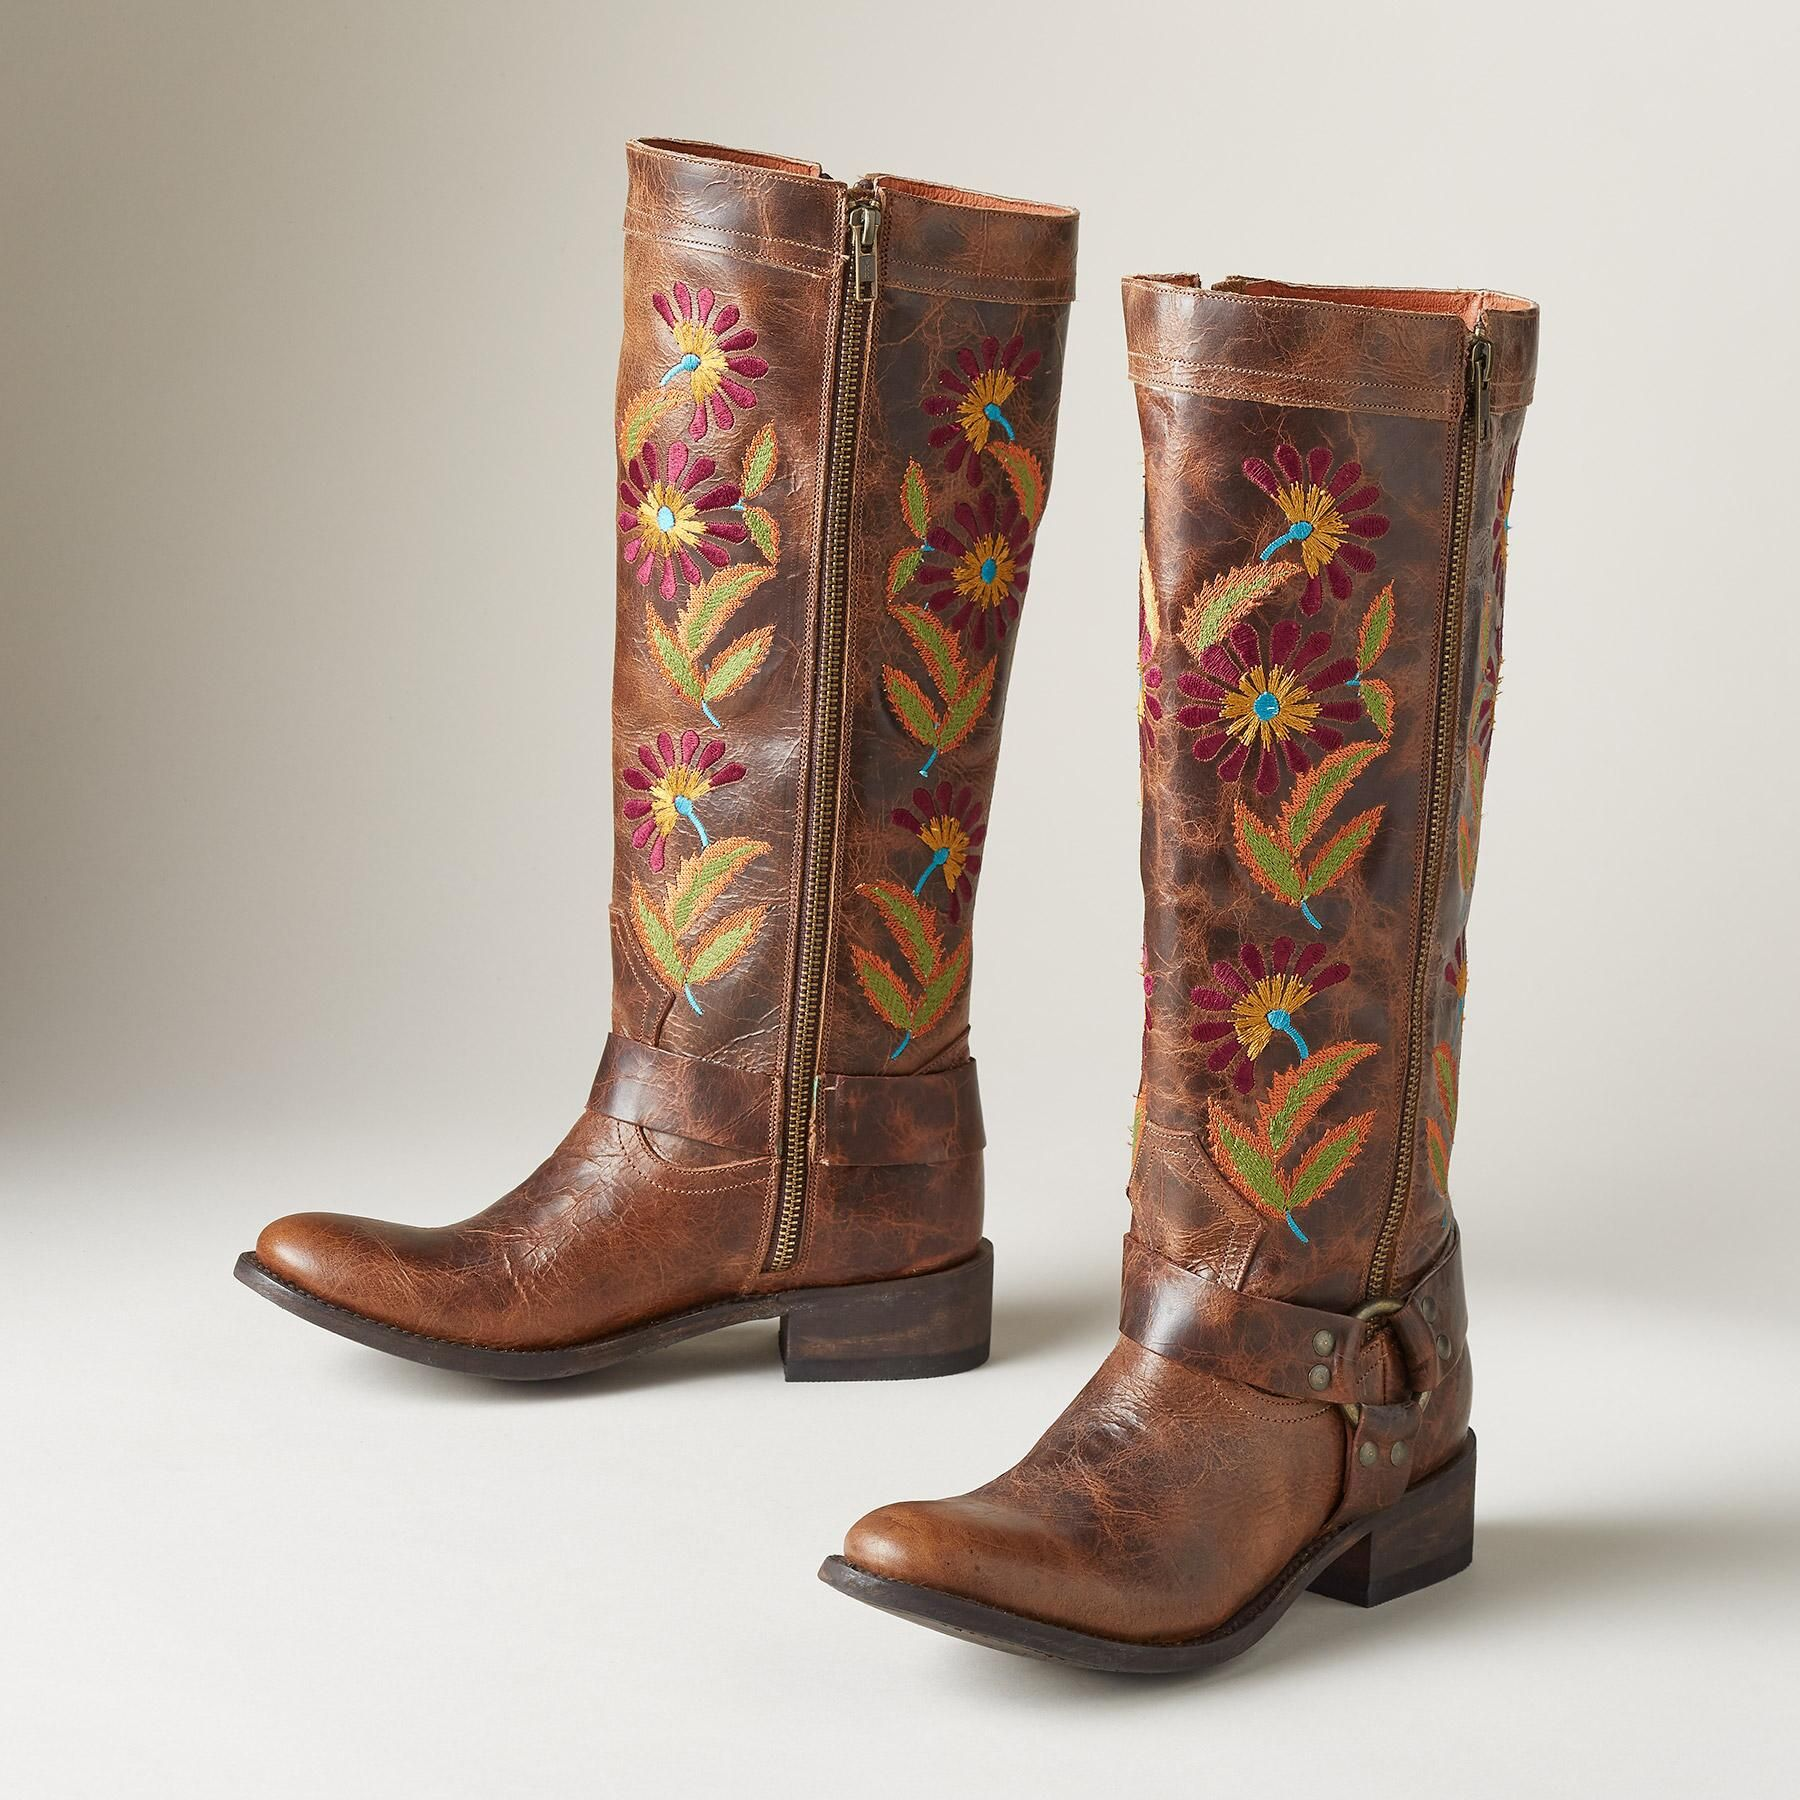 dc6b888dedeb4 CALENDULA BOOTS -- Embroidered wildflowers, in fiery, sunset tones ...